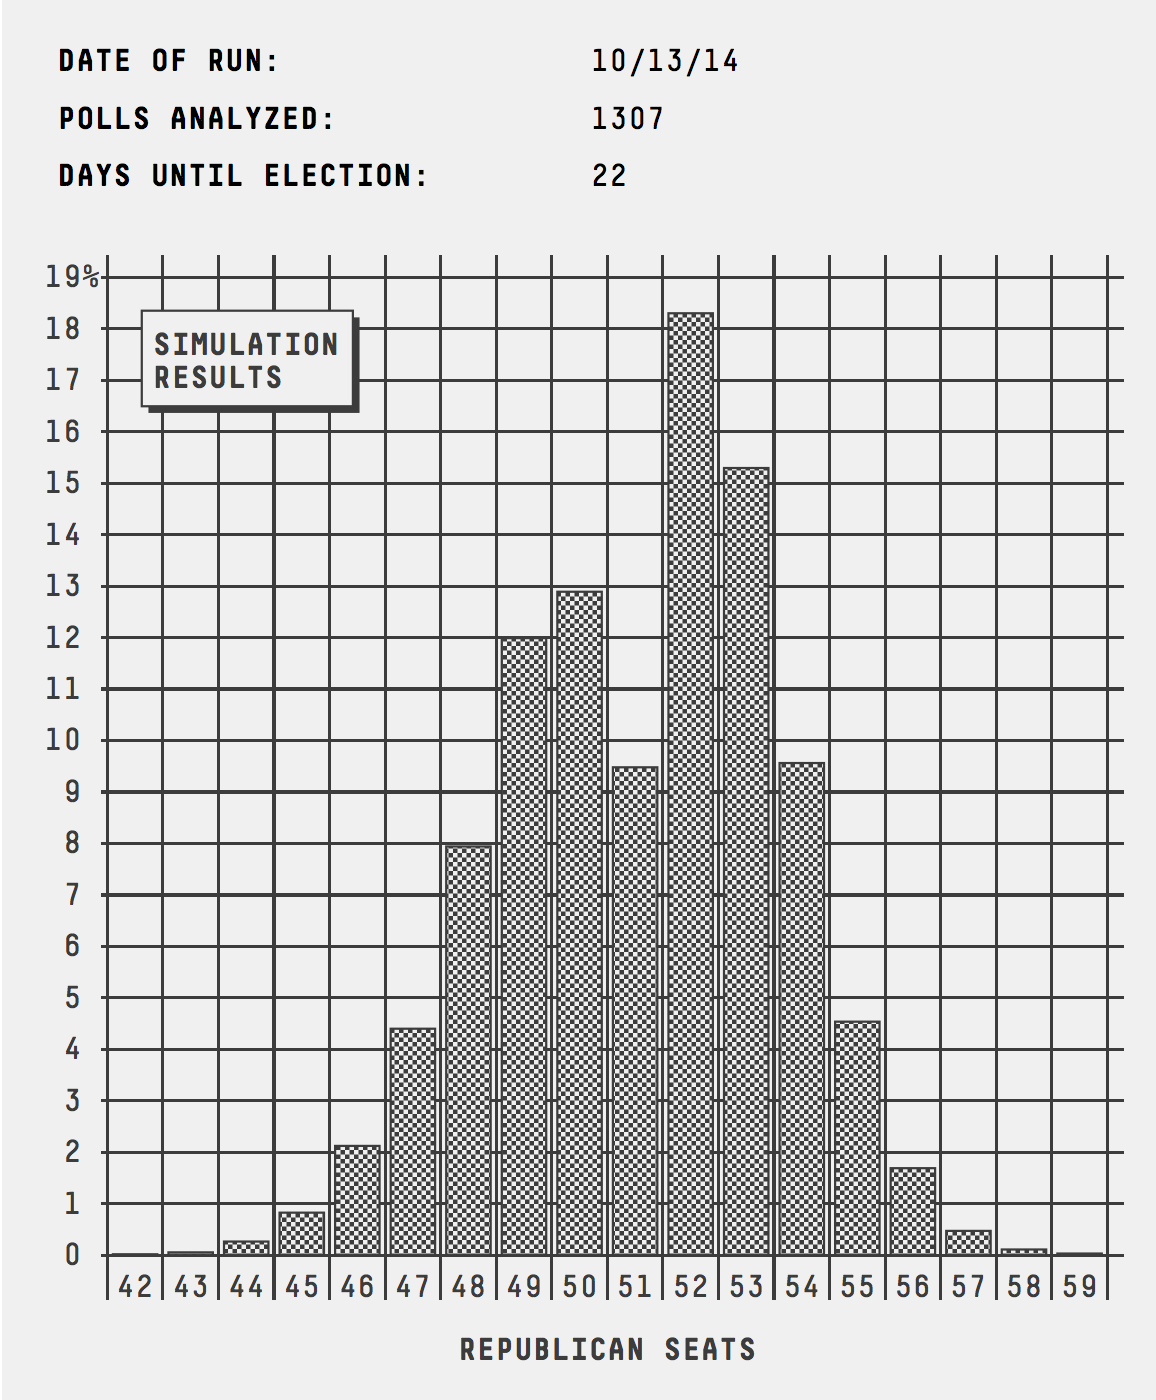 senate_histogram_1013